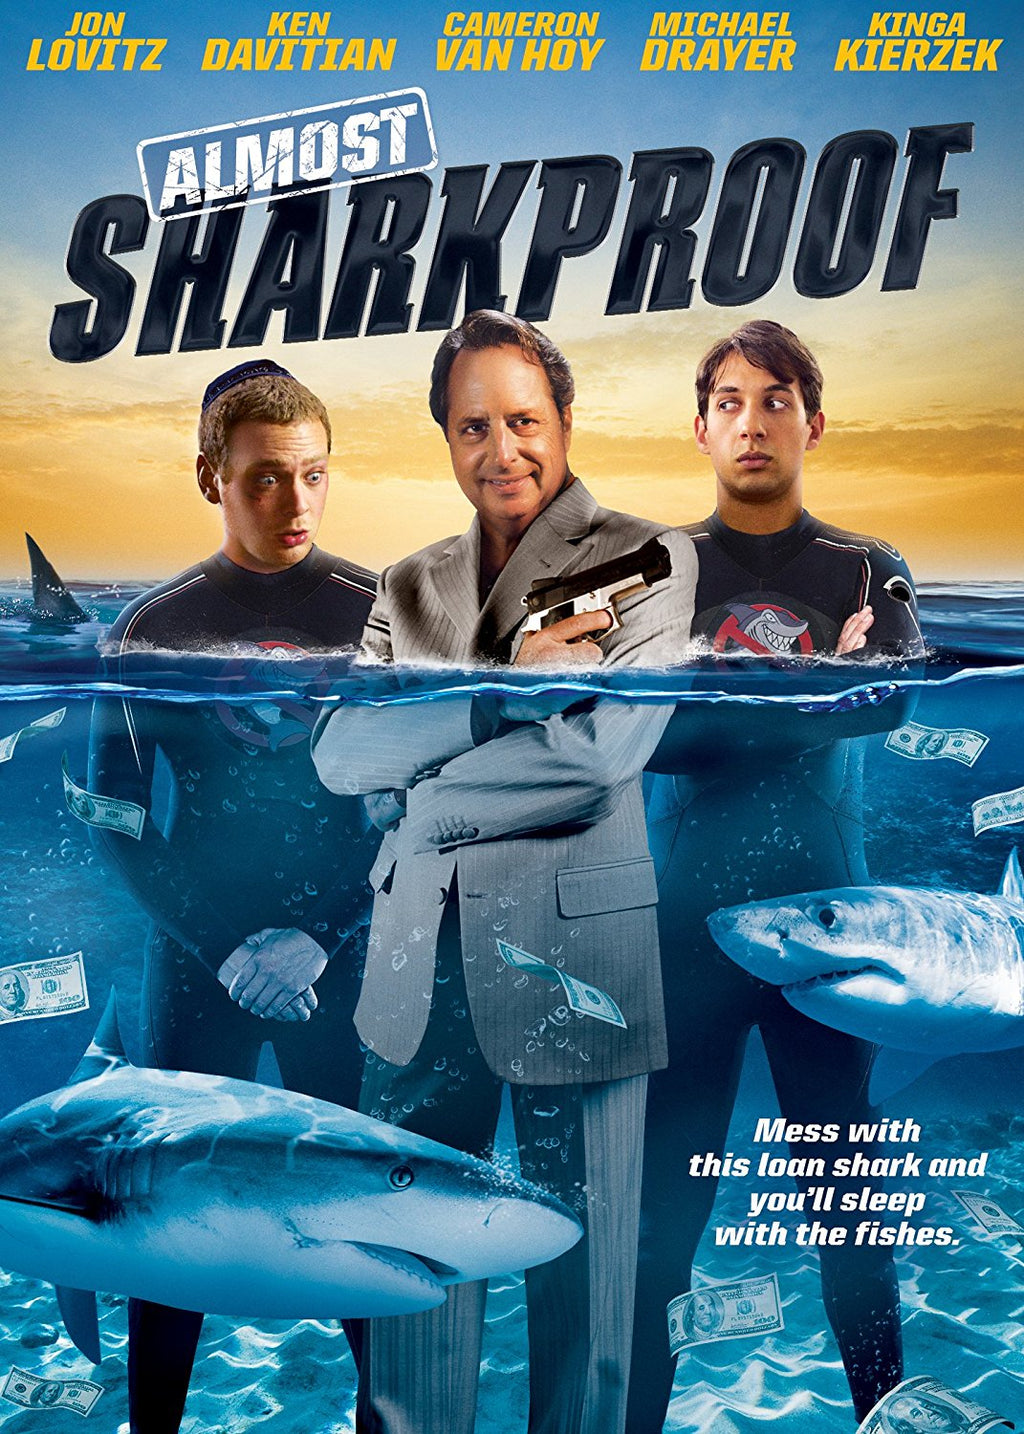 Almost Sharkproof DVD